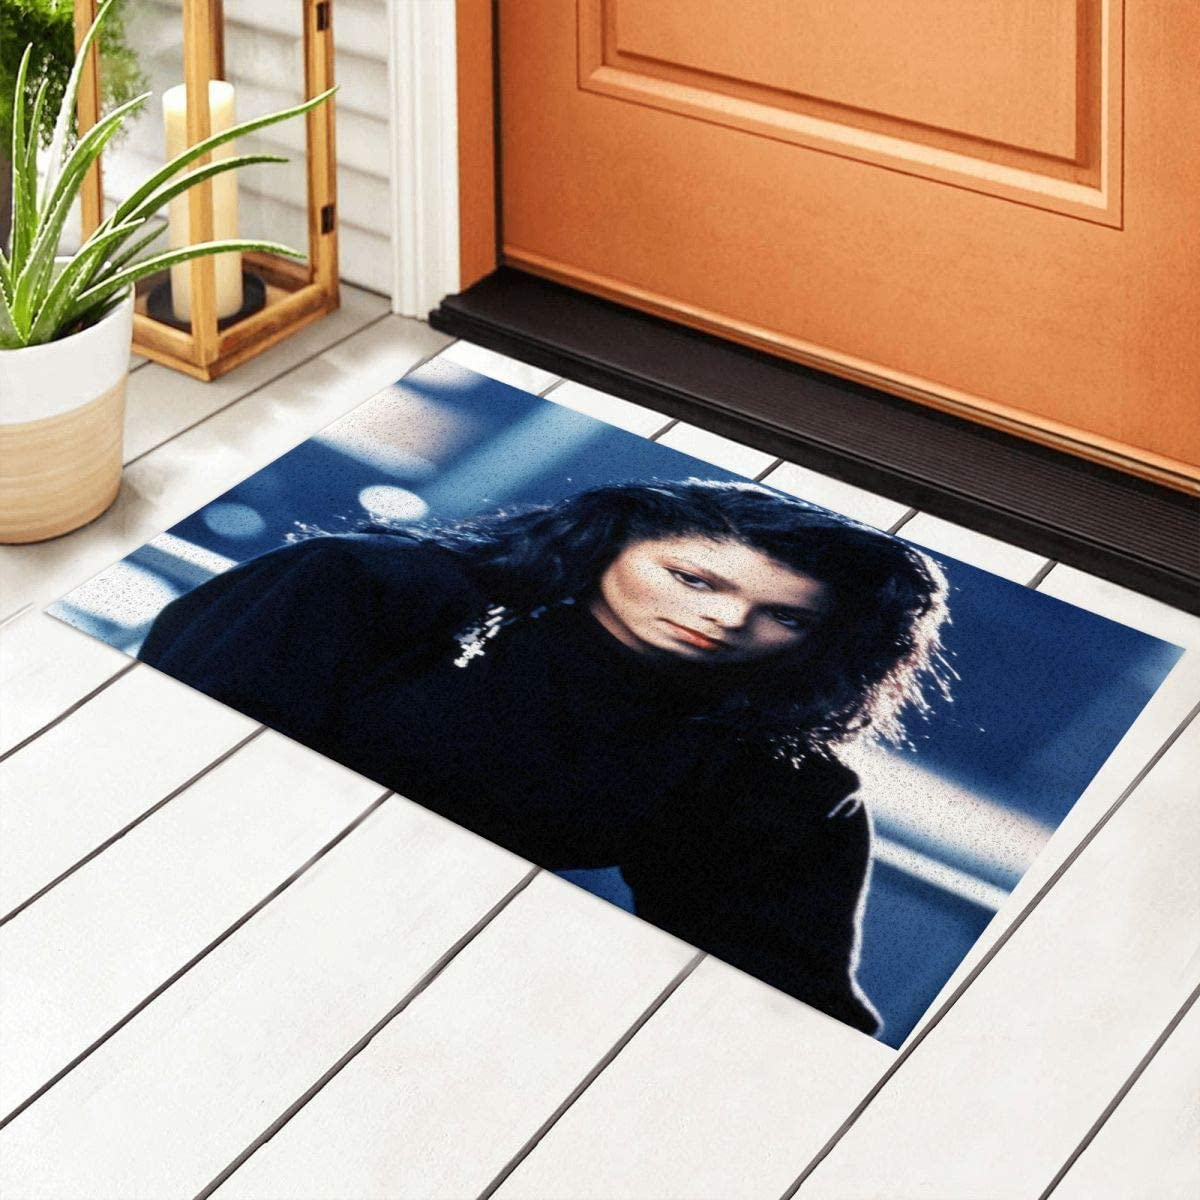 Meimall Janet Jackson Doormat Indoor Absorbent Entrance Rug Entryway Welcome Mats for Shoe Scraper for Kitchen Welcome Mat Outside High Traffic Area 15.7 by 23.6 Inc